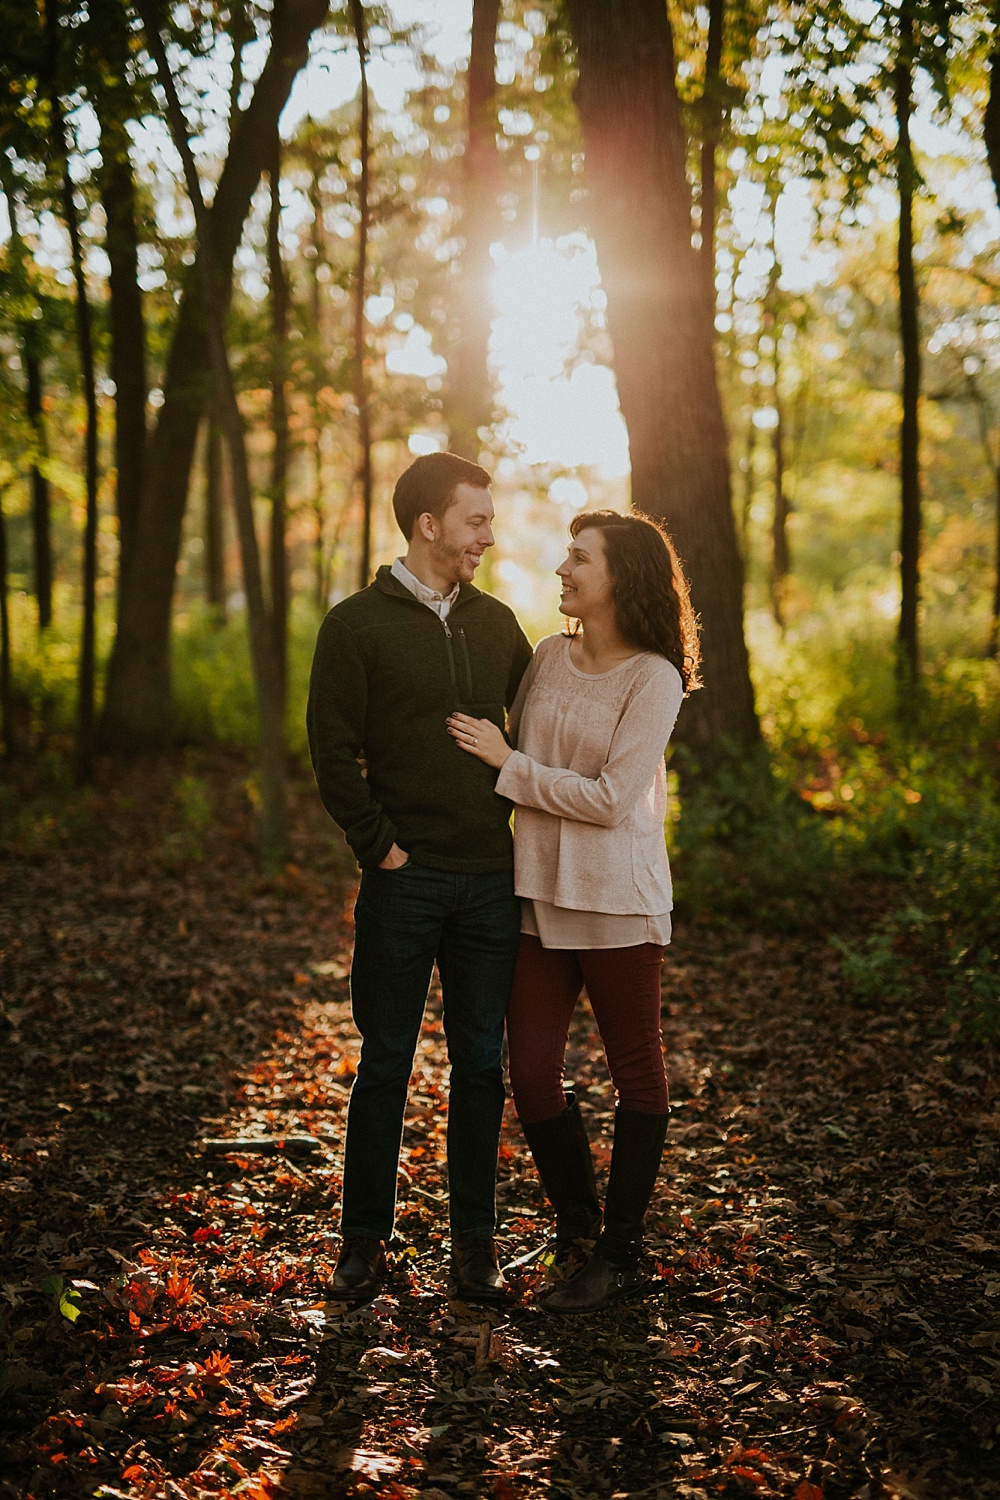 Joey-Evi_Cantigny-Engagement-Session_Liller-Photo_0004.jpg